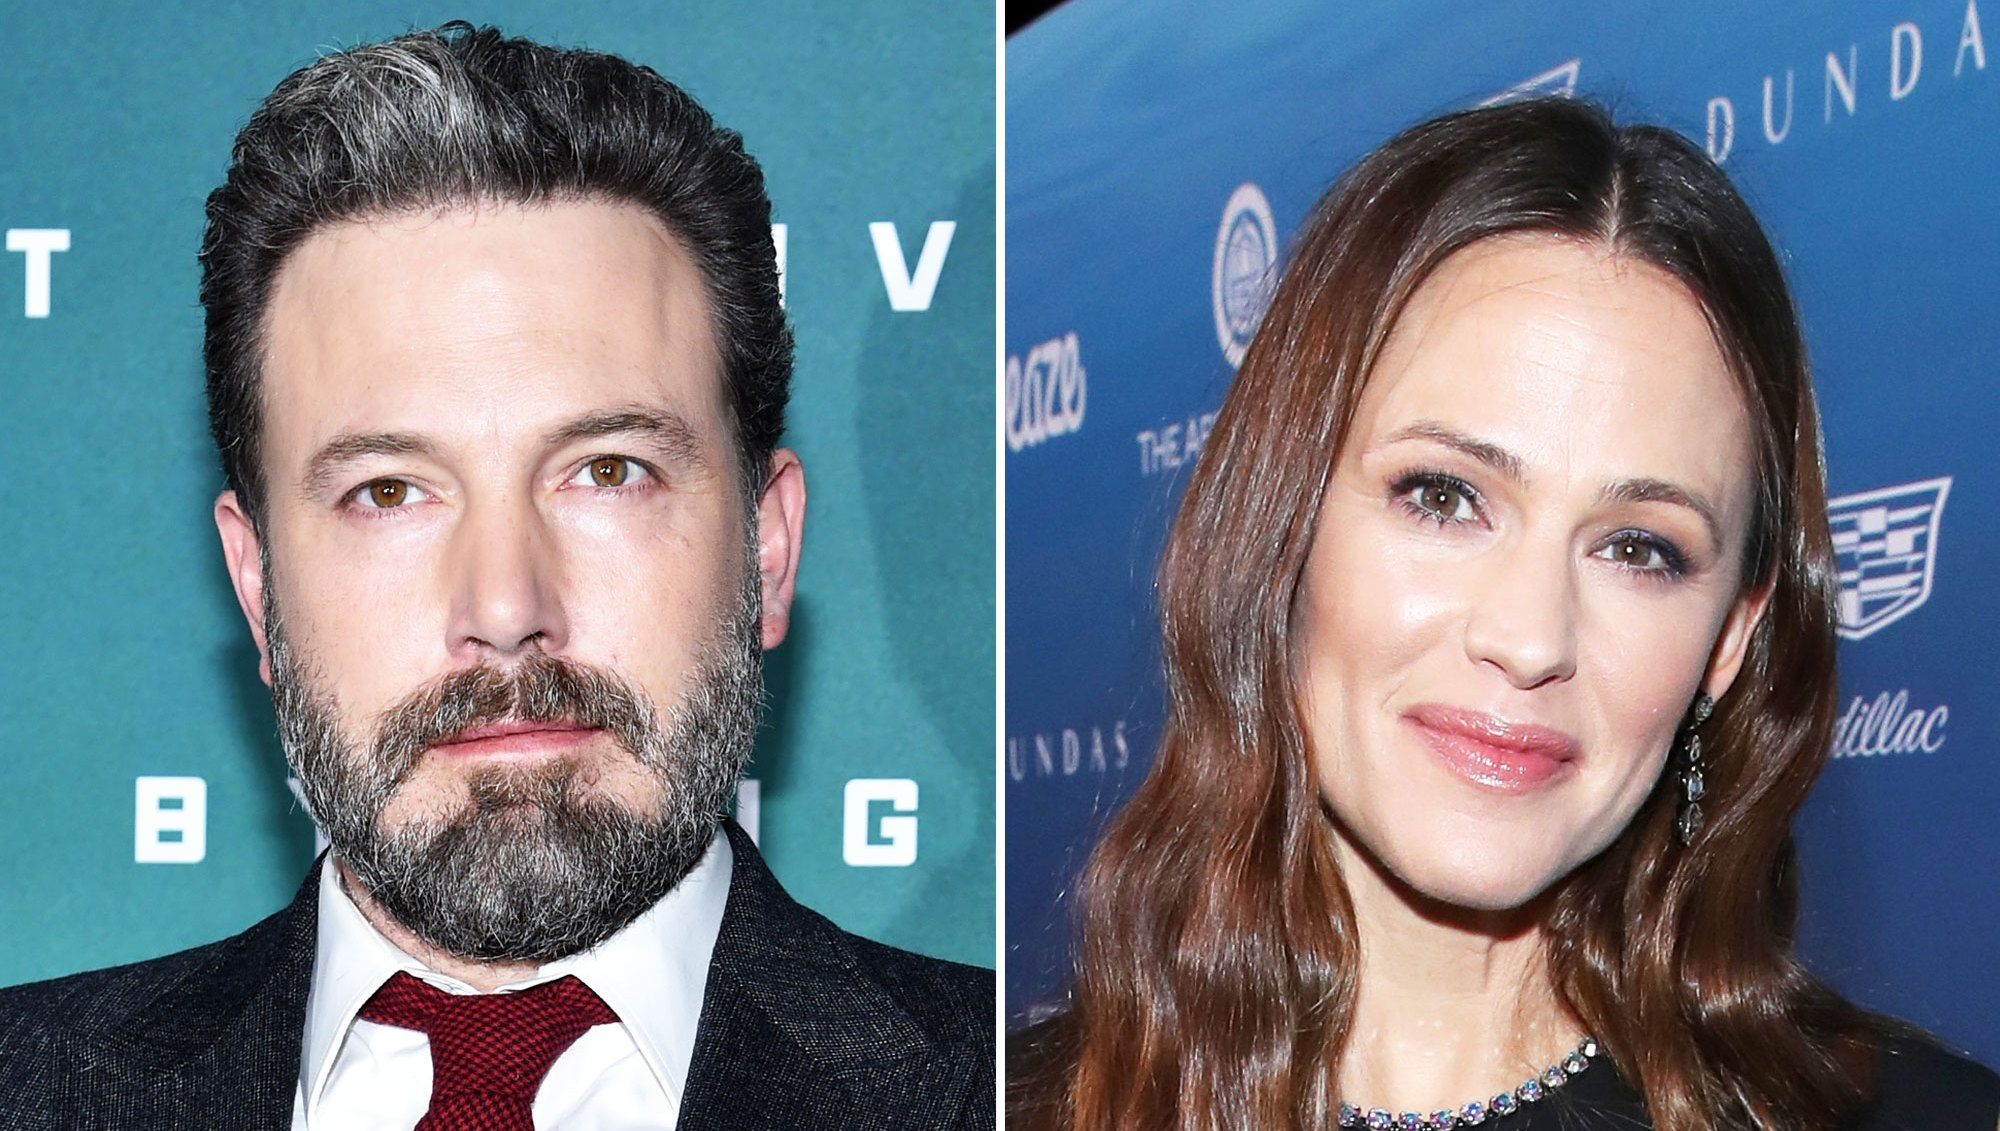 Ben Affleck Gives 6-Year-Old Son's Room a Wild Patriots Makeover: 'My Ex-Wife Thinks It's Creepy'